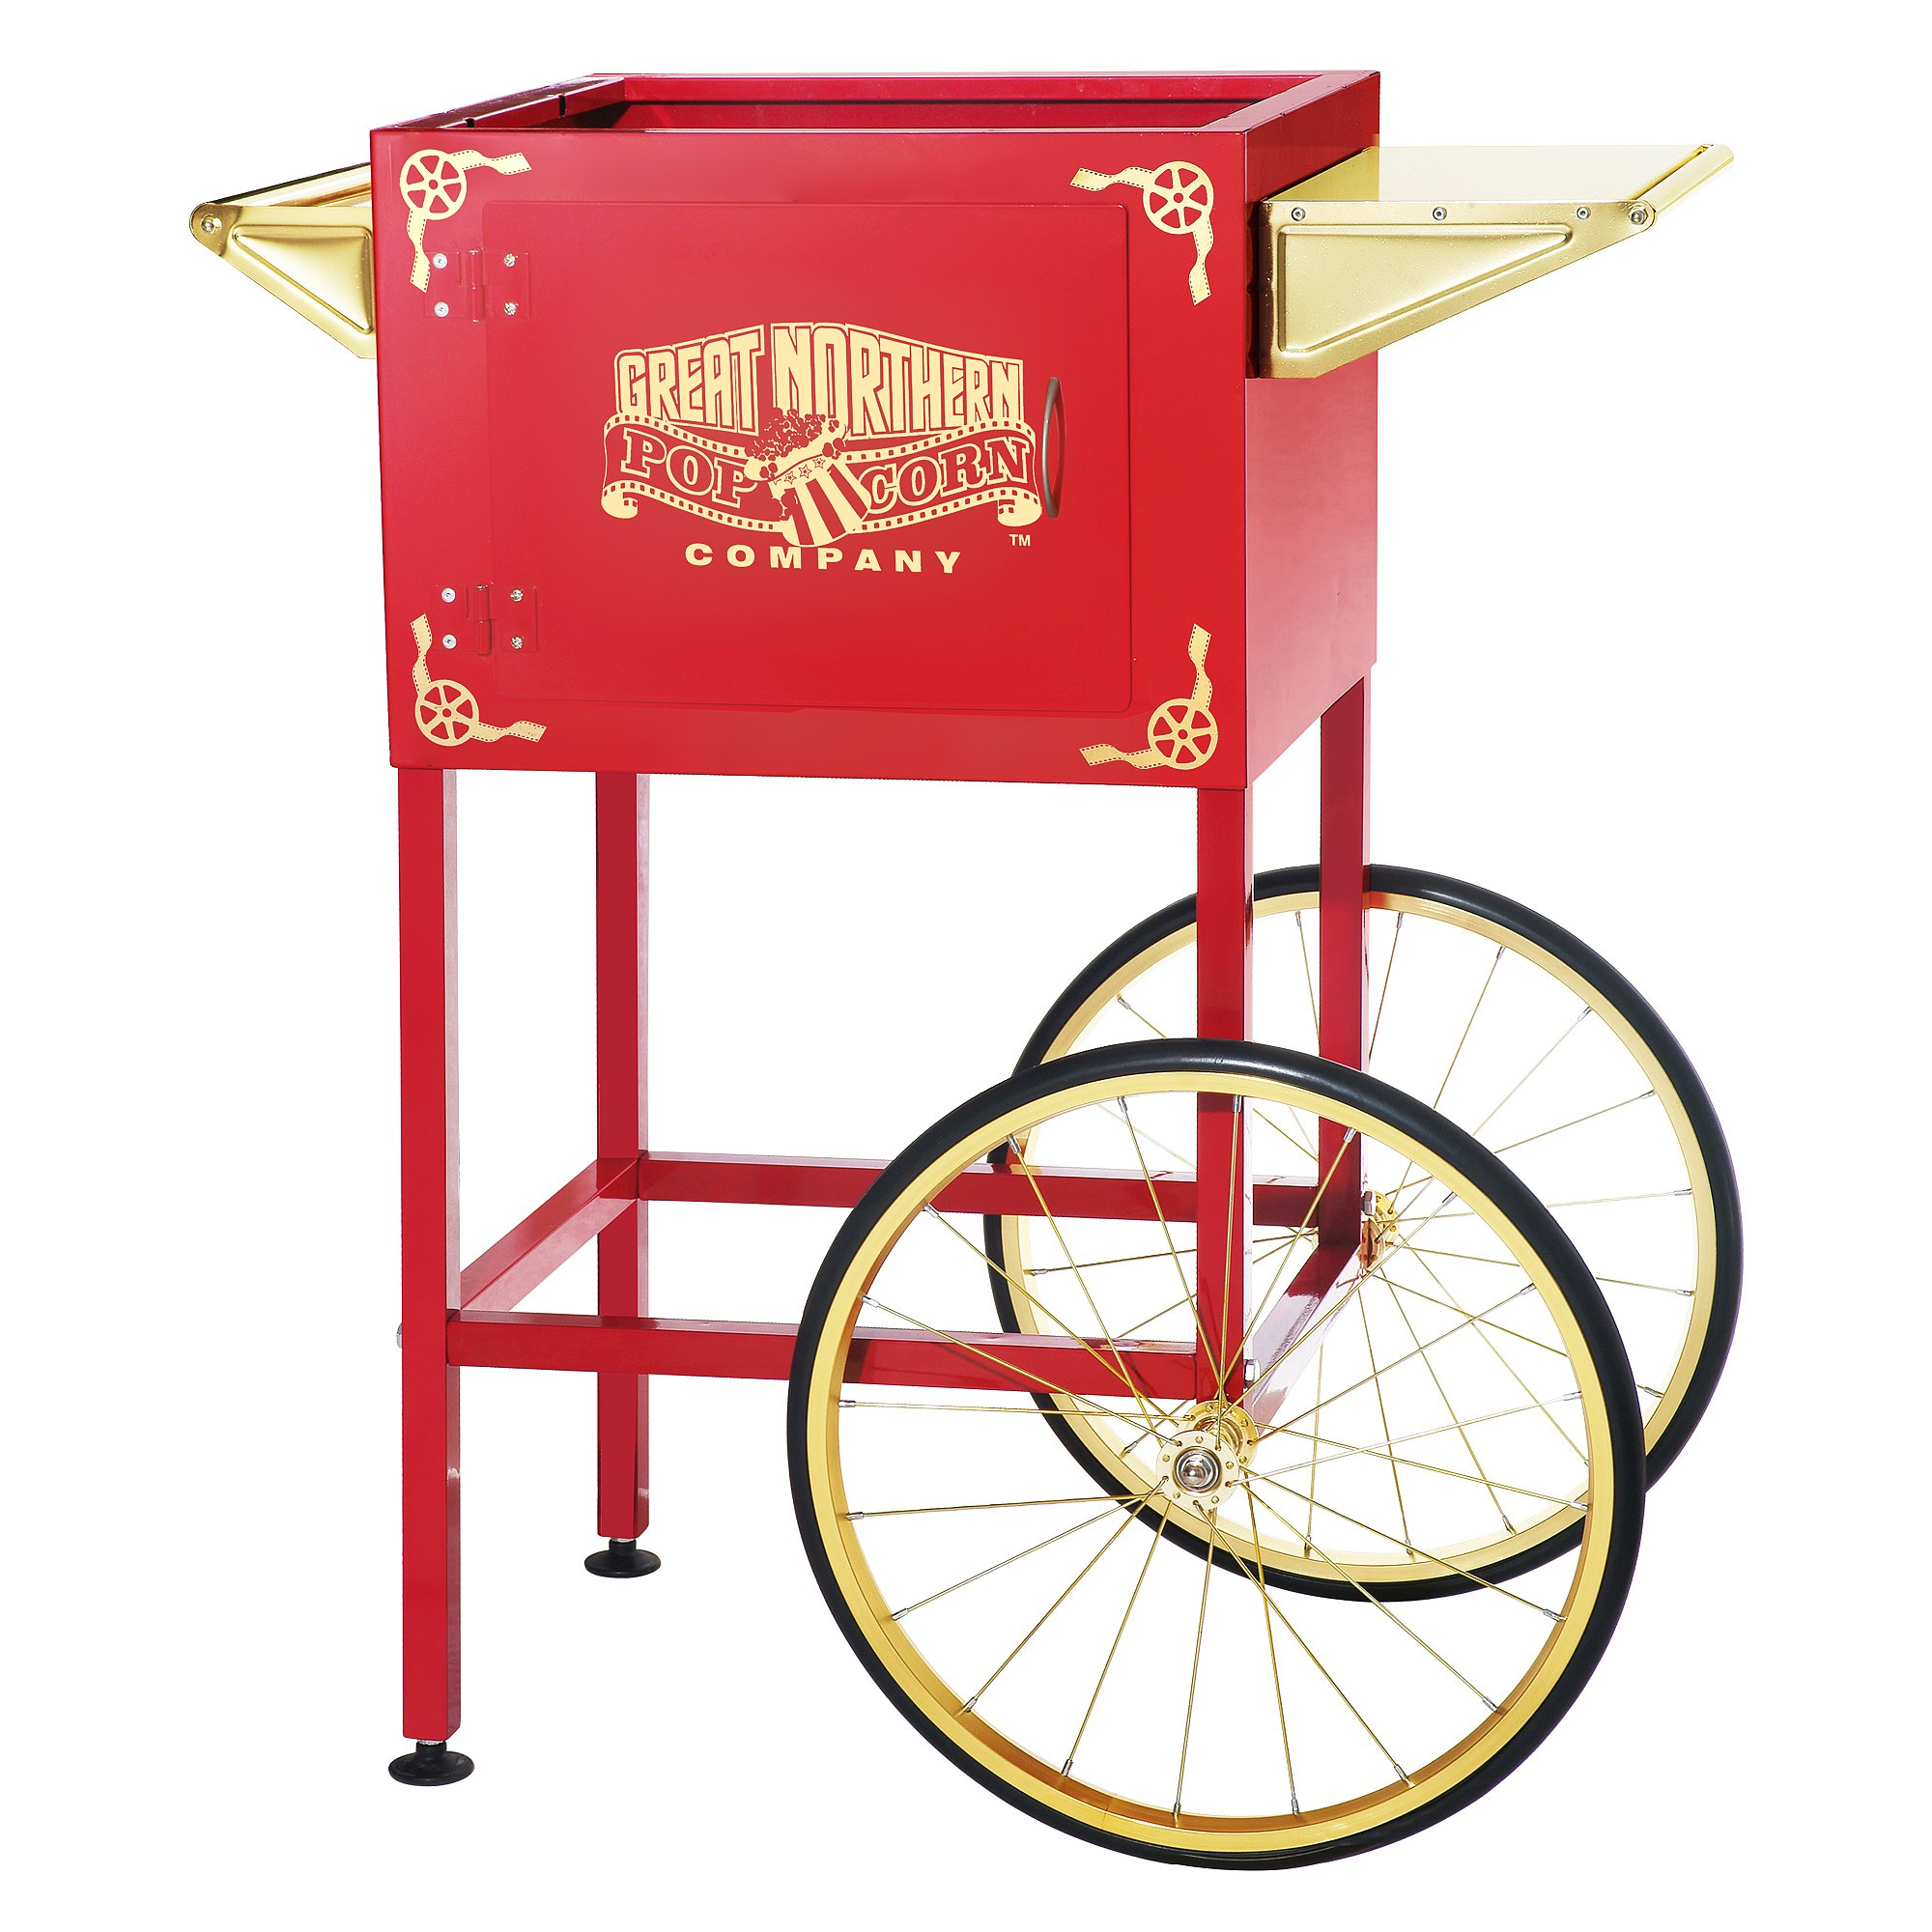 6400 Red Replacement Cart for Larger Roosevelt Style Great Northern Popcorn Machines by Great Northern Popcorn Company